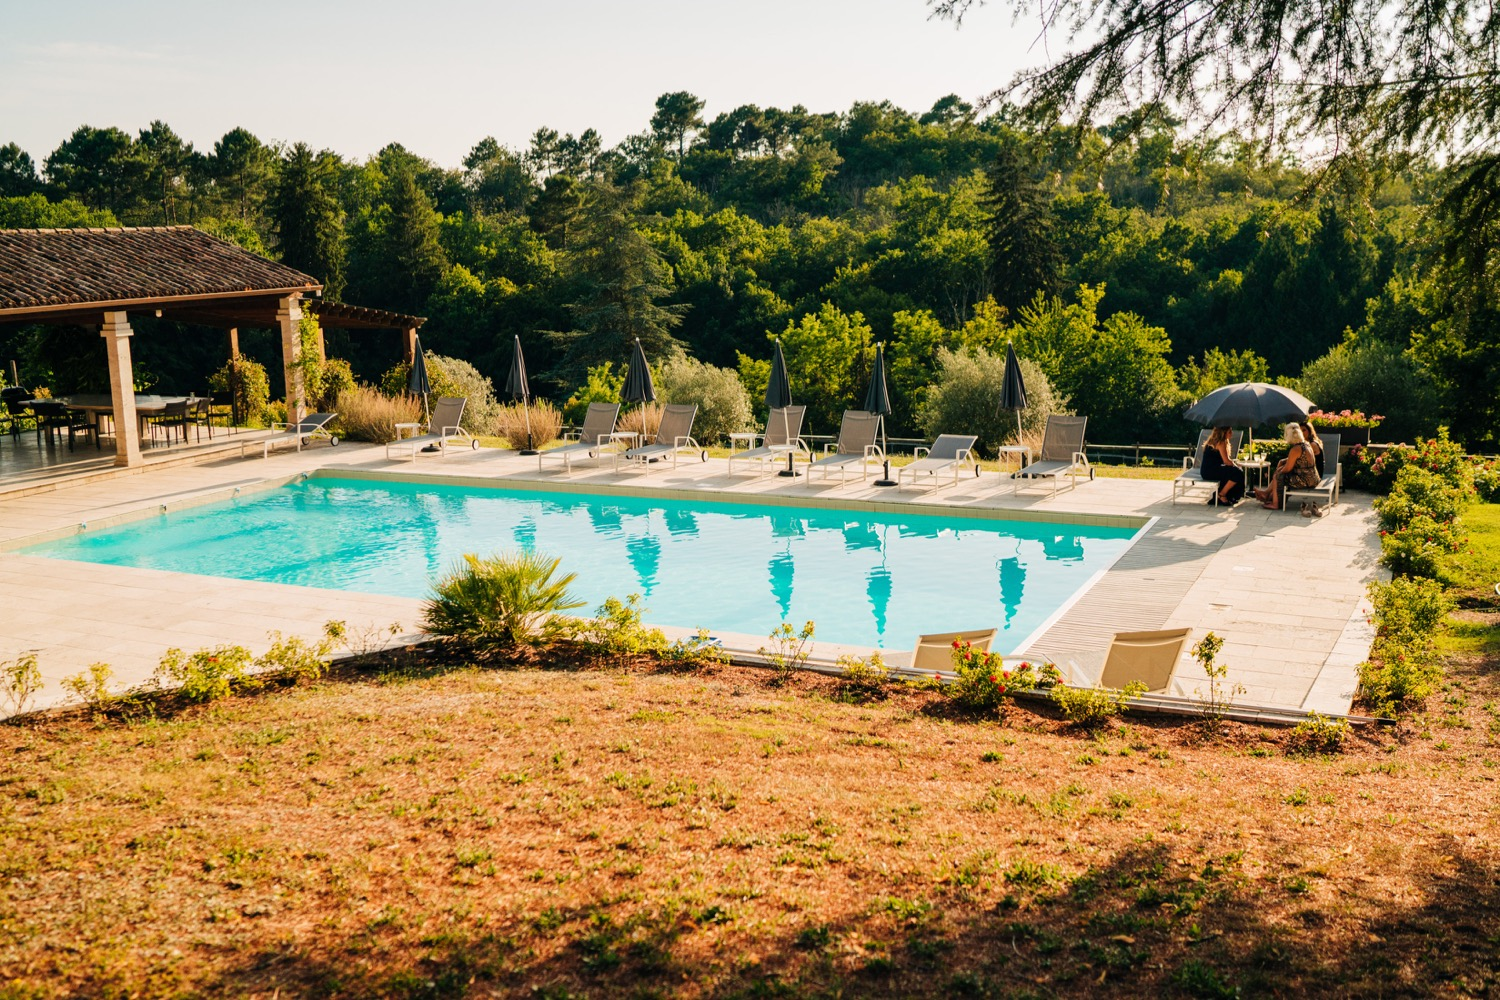 An outdoor pool surrounded by beautiful nature in France at Domaine La Fauconnie, photo captured by Magic Wedding Photographer in Europe.